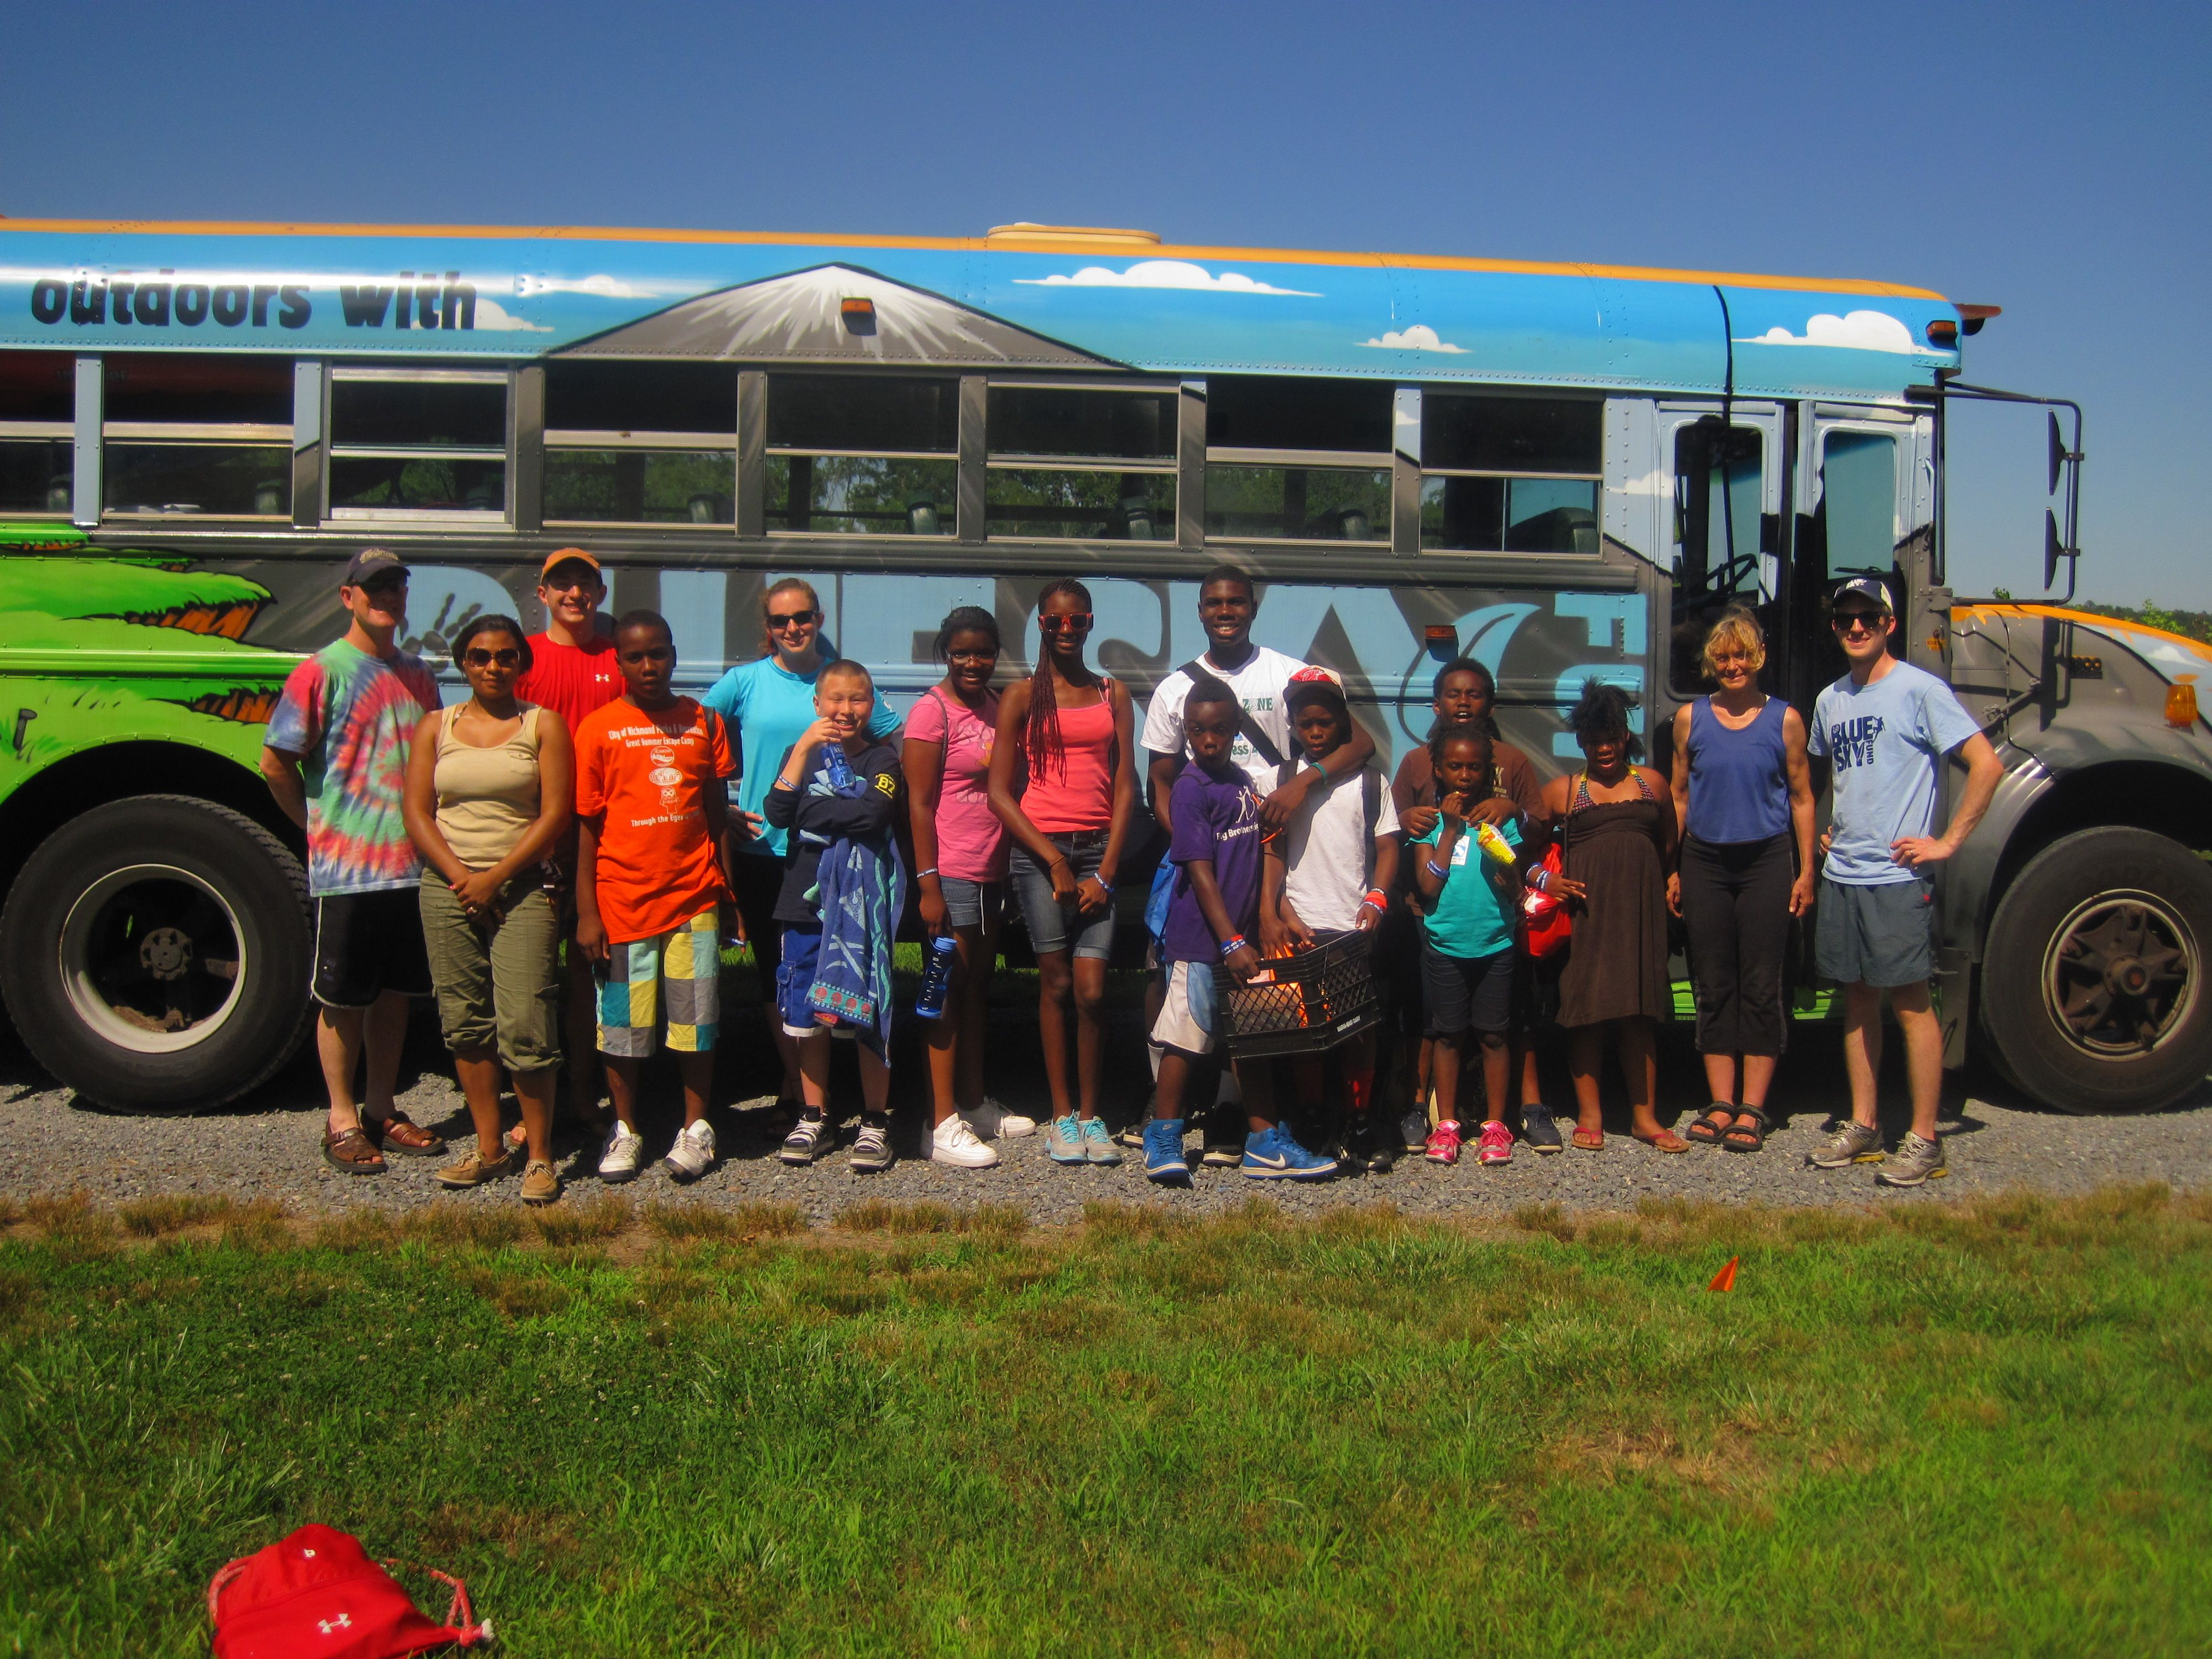 The ACA Coordinated a Kayak Fishing Event for Richmond Youth this past weekend! The event was fun for everyone!